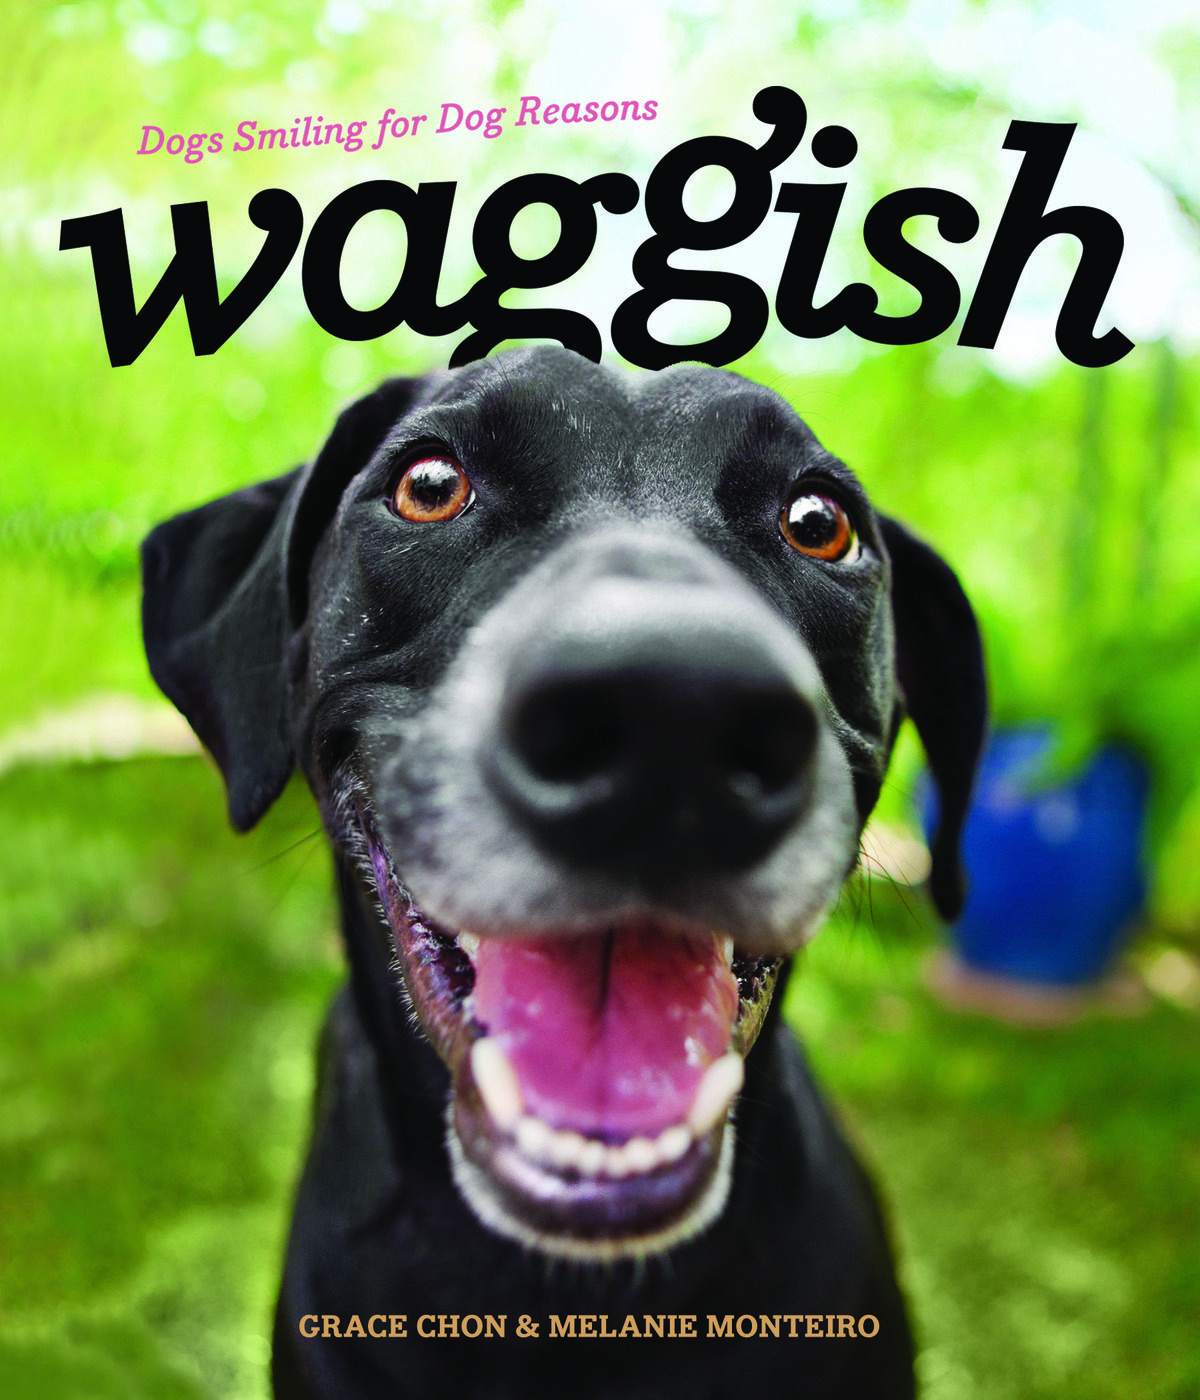 Waggish: Dogs Smiling for Dog Reasons by Grace Chon & Melanie Monteiro, Autumn 2017